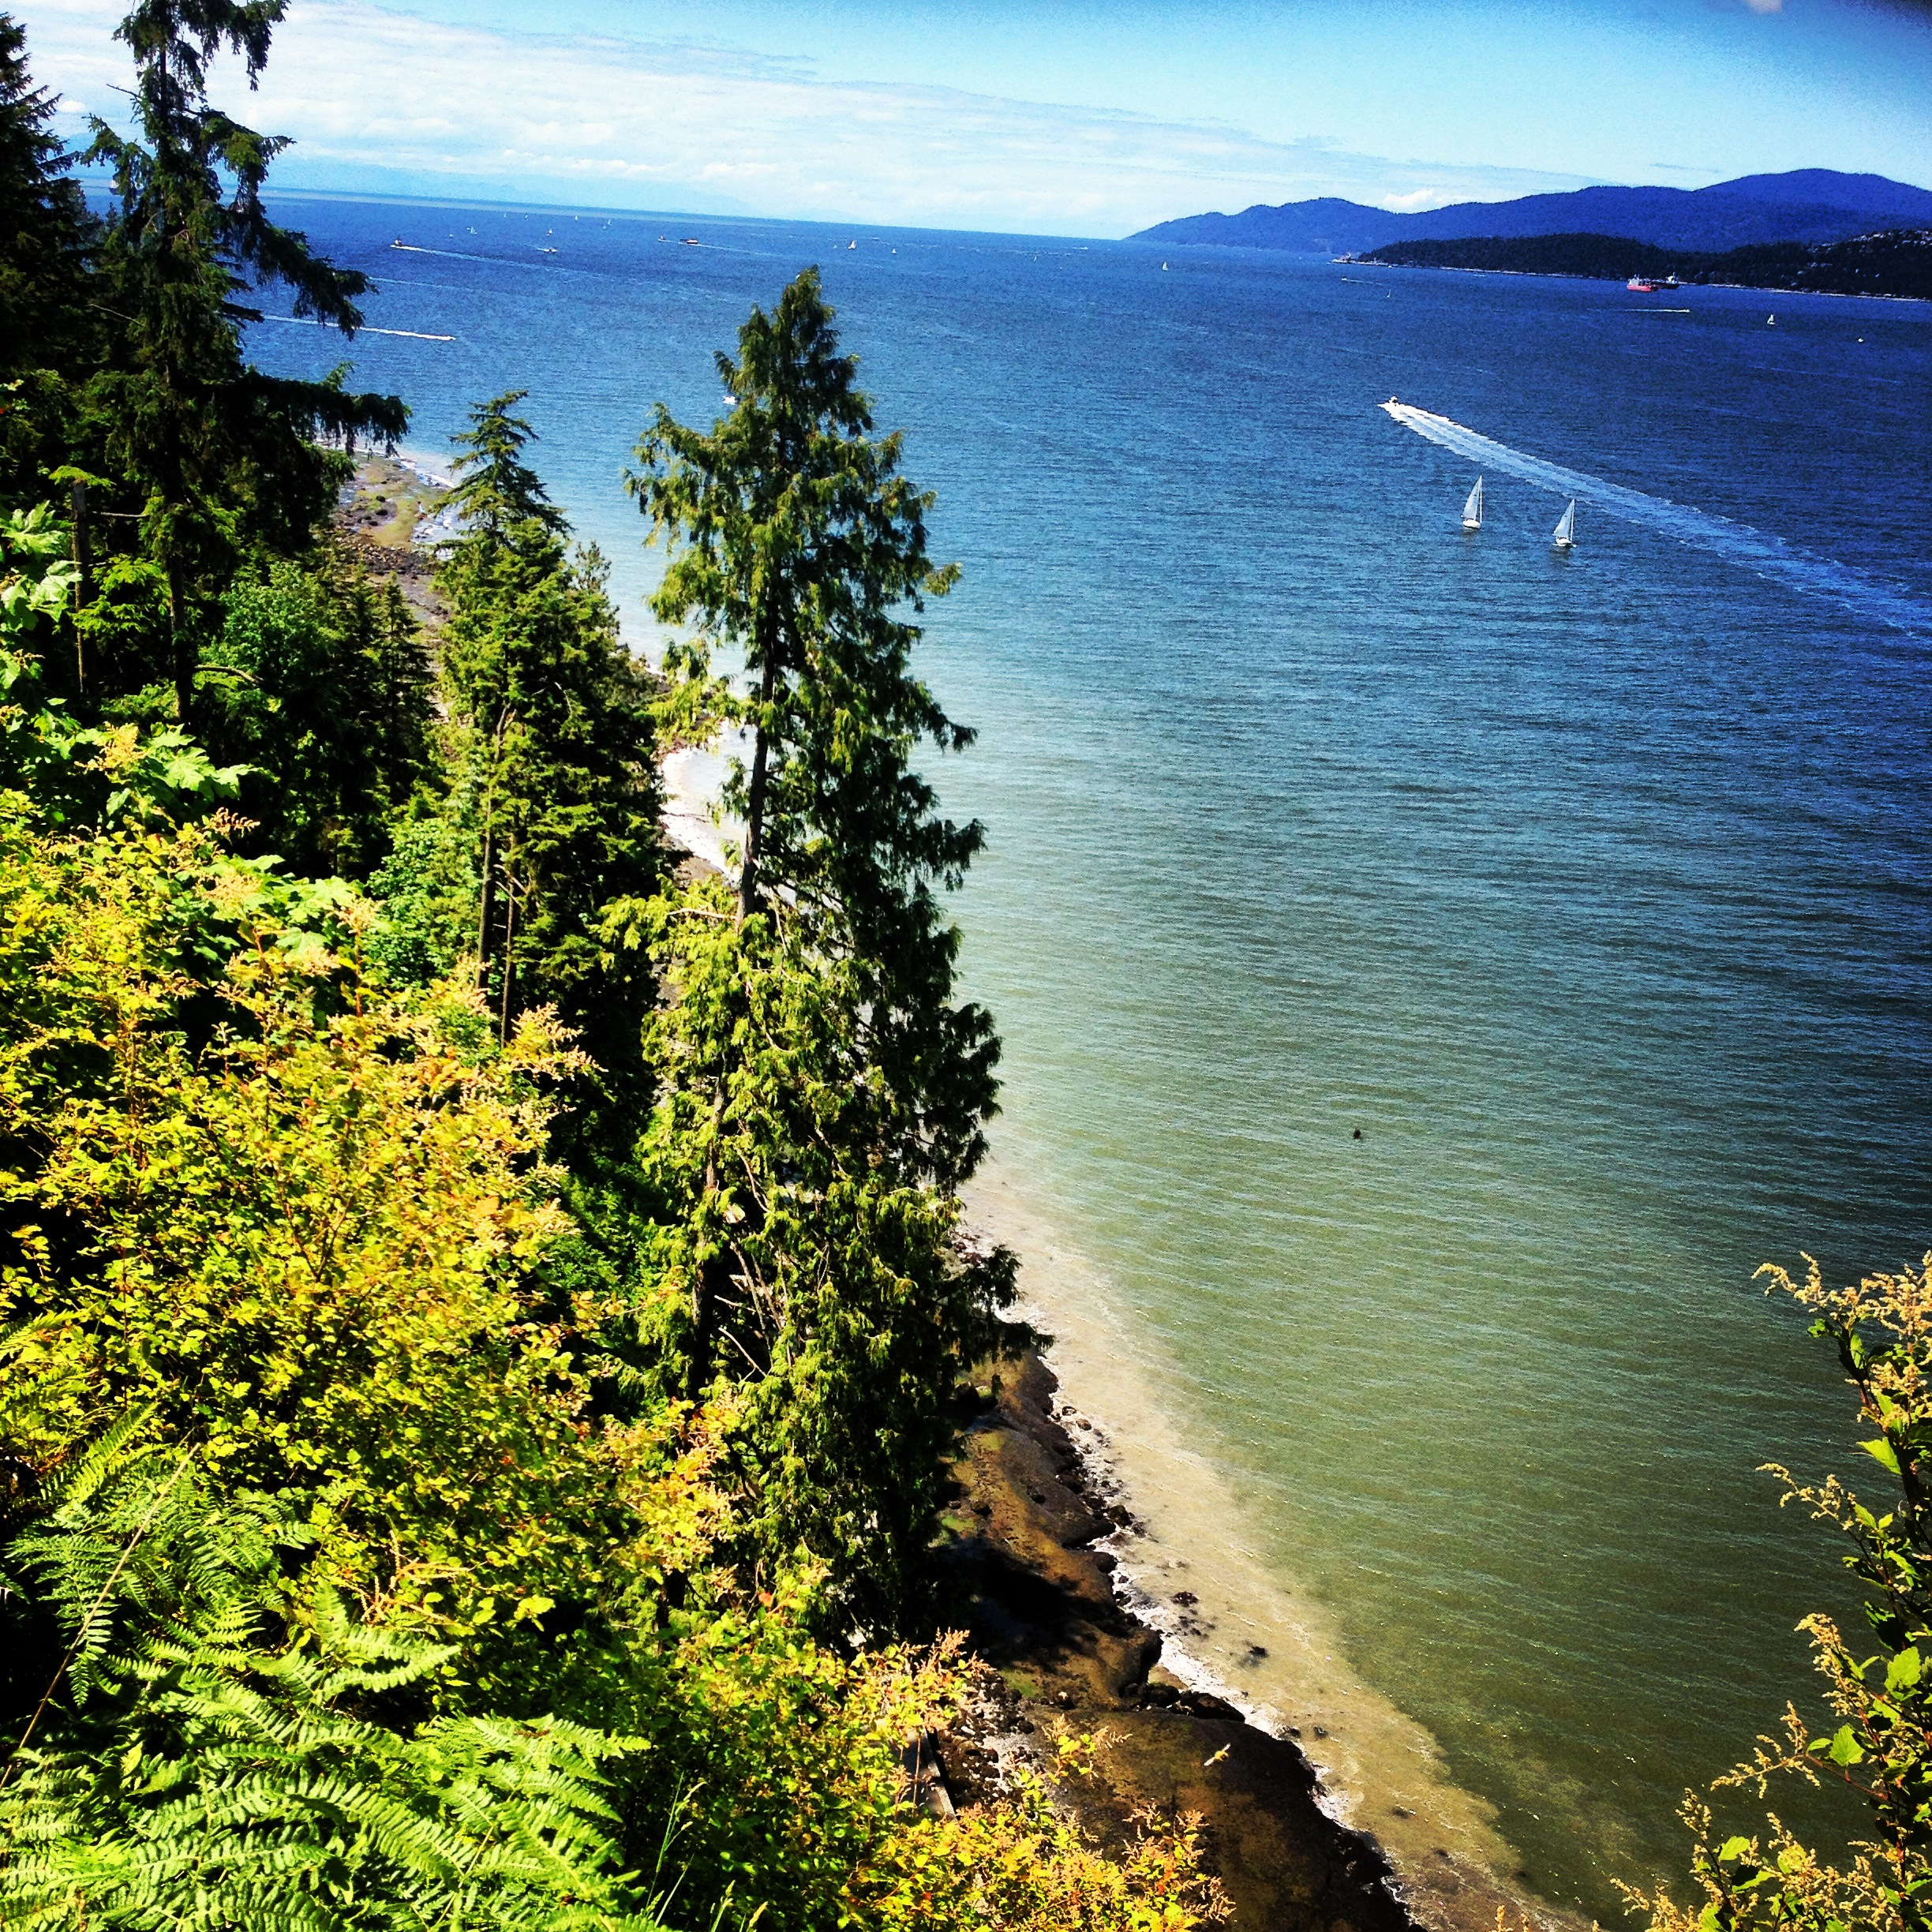 10 Things to Do with Kids in Vancouver, British Columbia, Canada from Kids Activities Blog